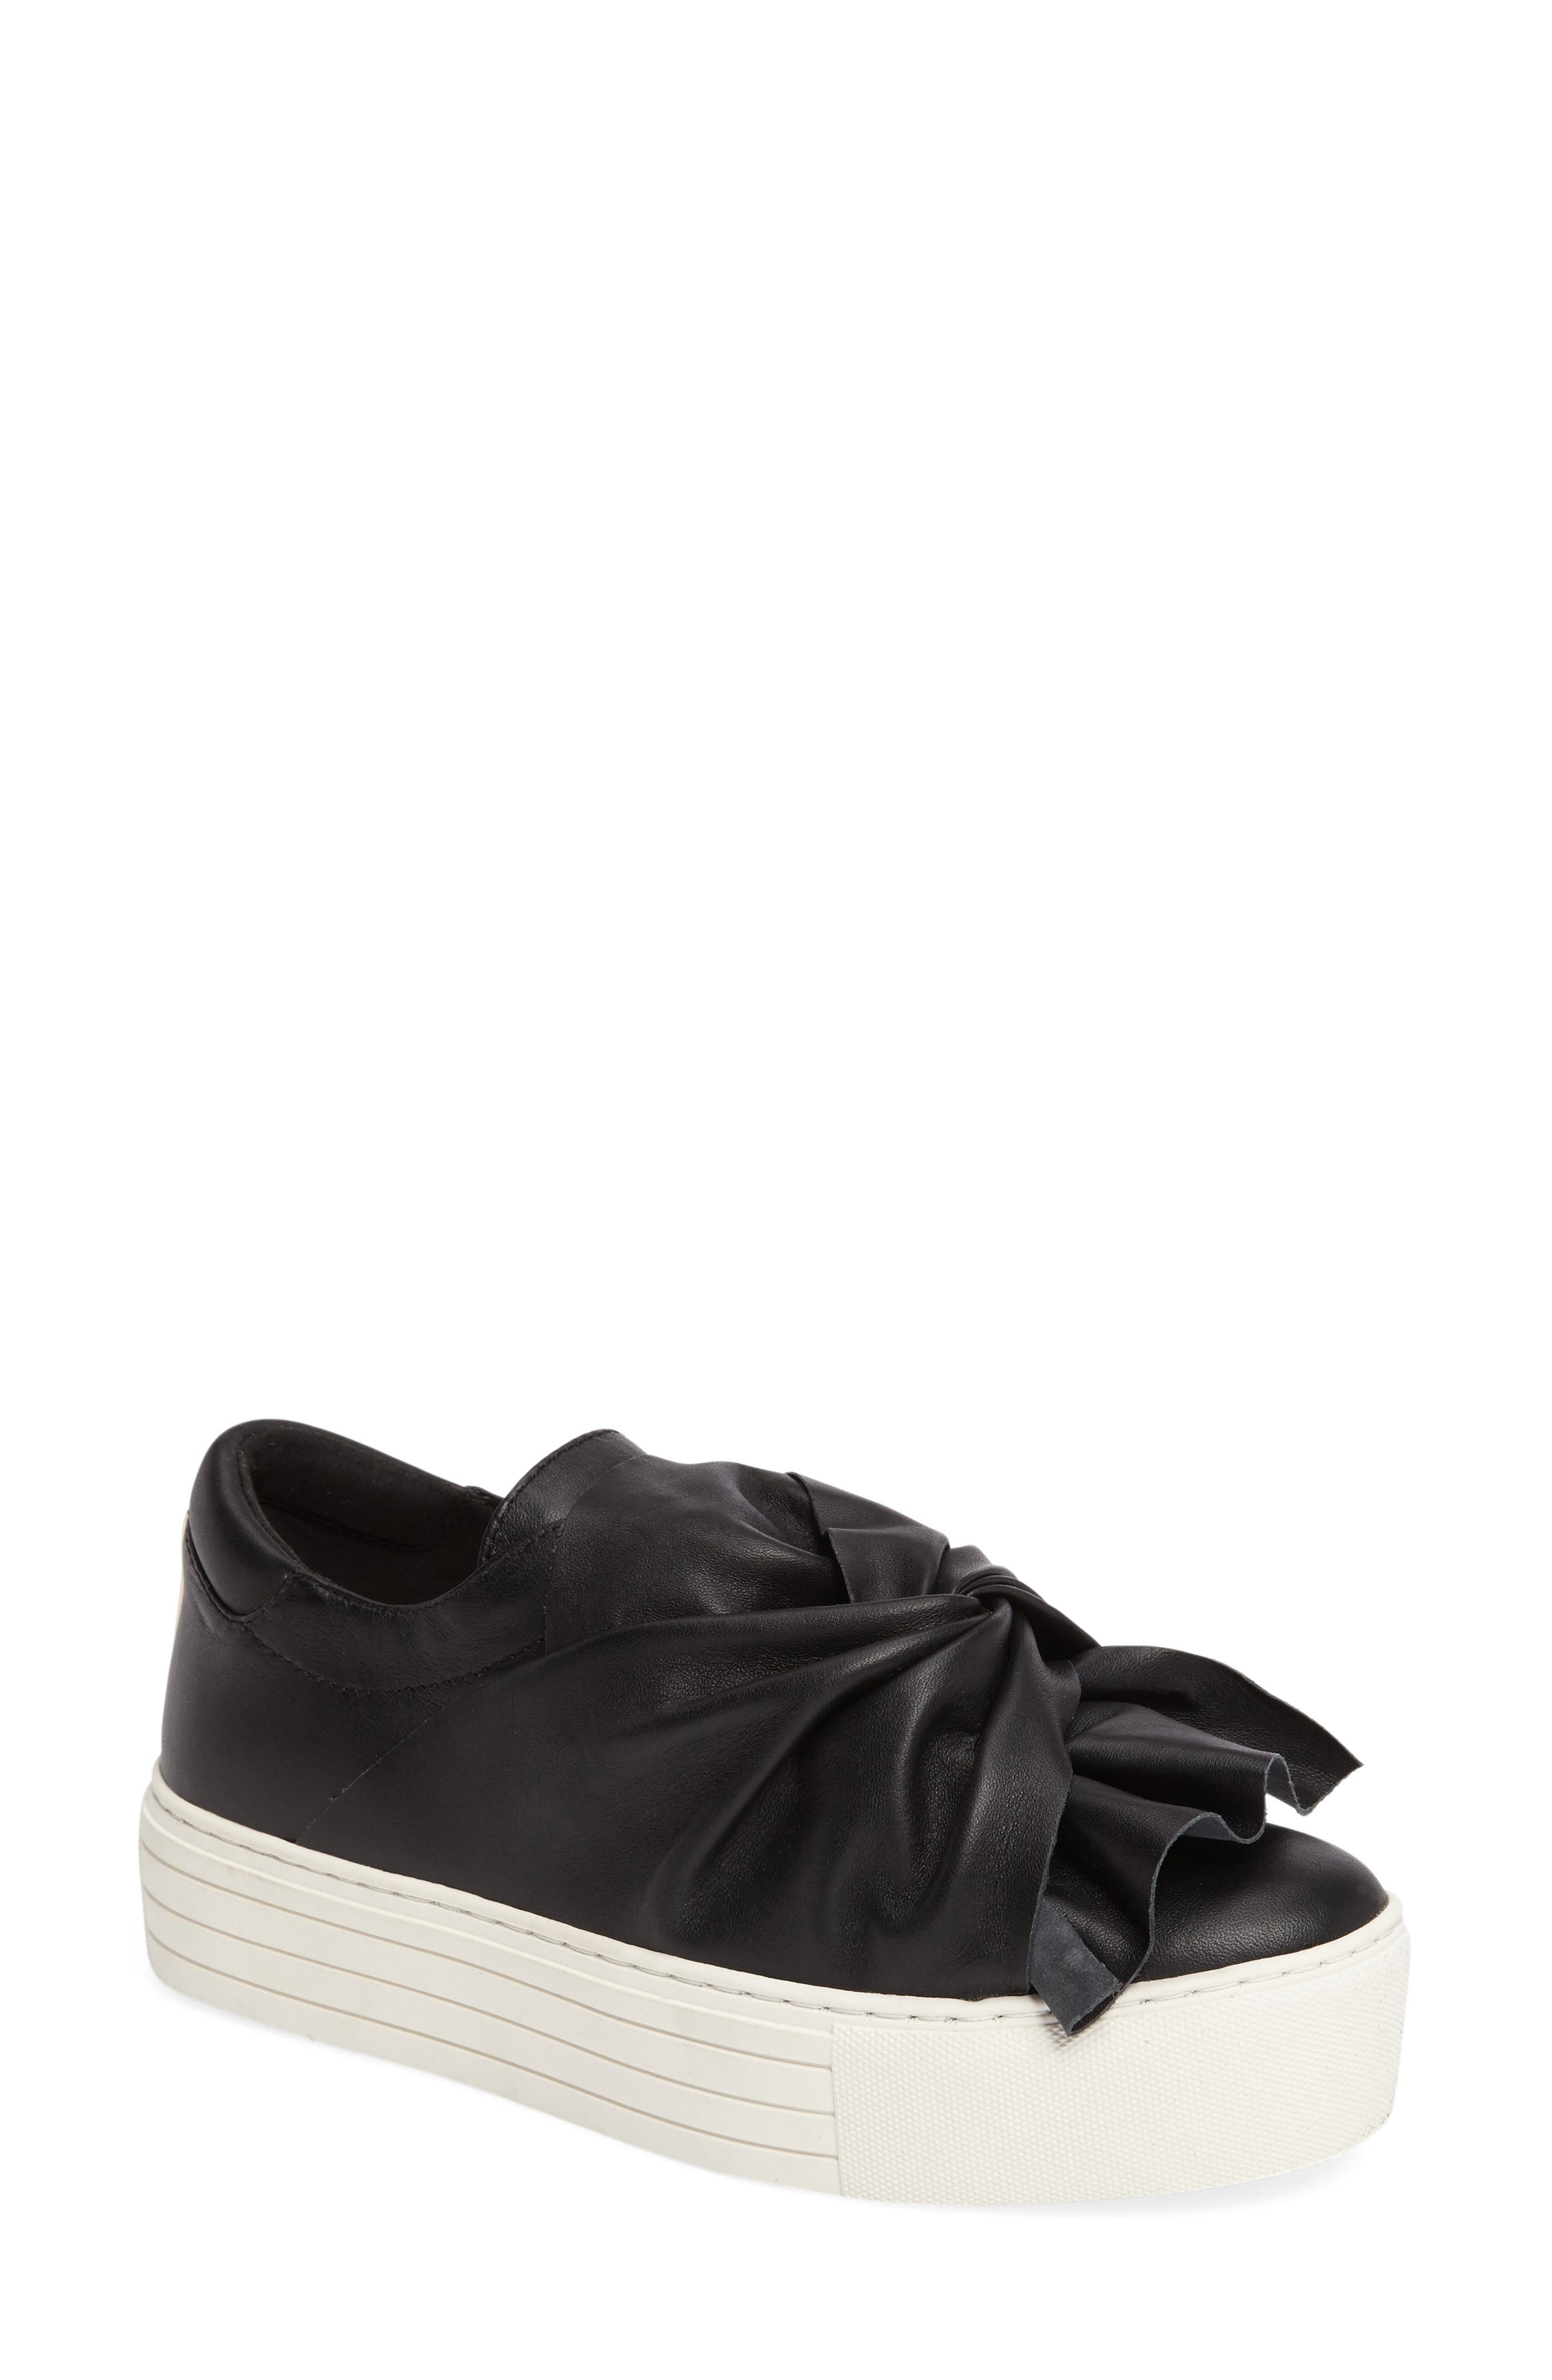 KENNETH COLE NEW YORK, Kenneth Cole Aaron Twisted Knot Flatform Sneaker, Main thumbnail 1, color, 001